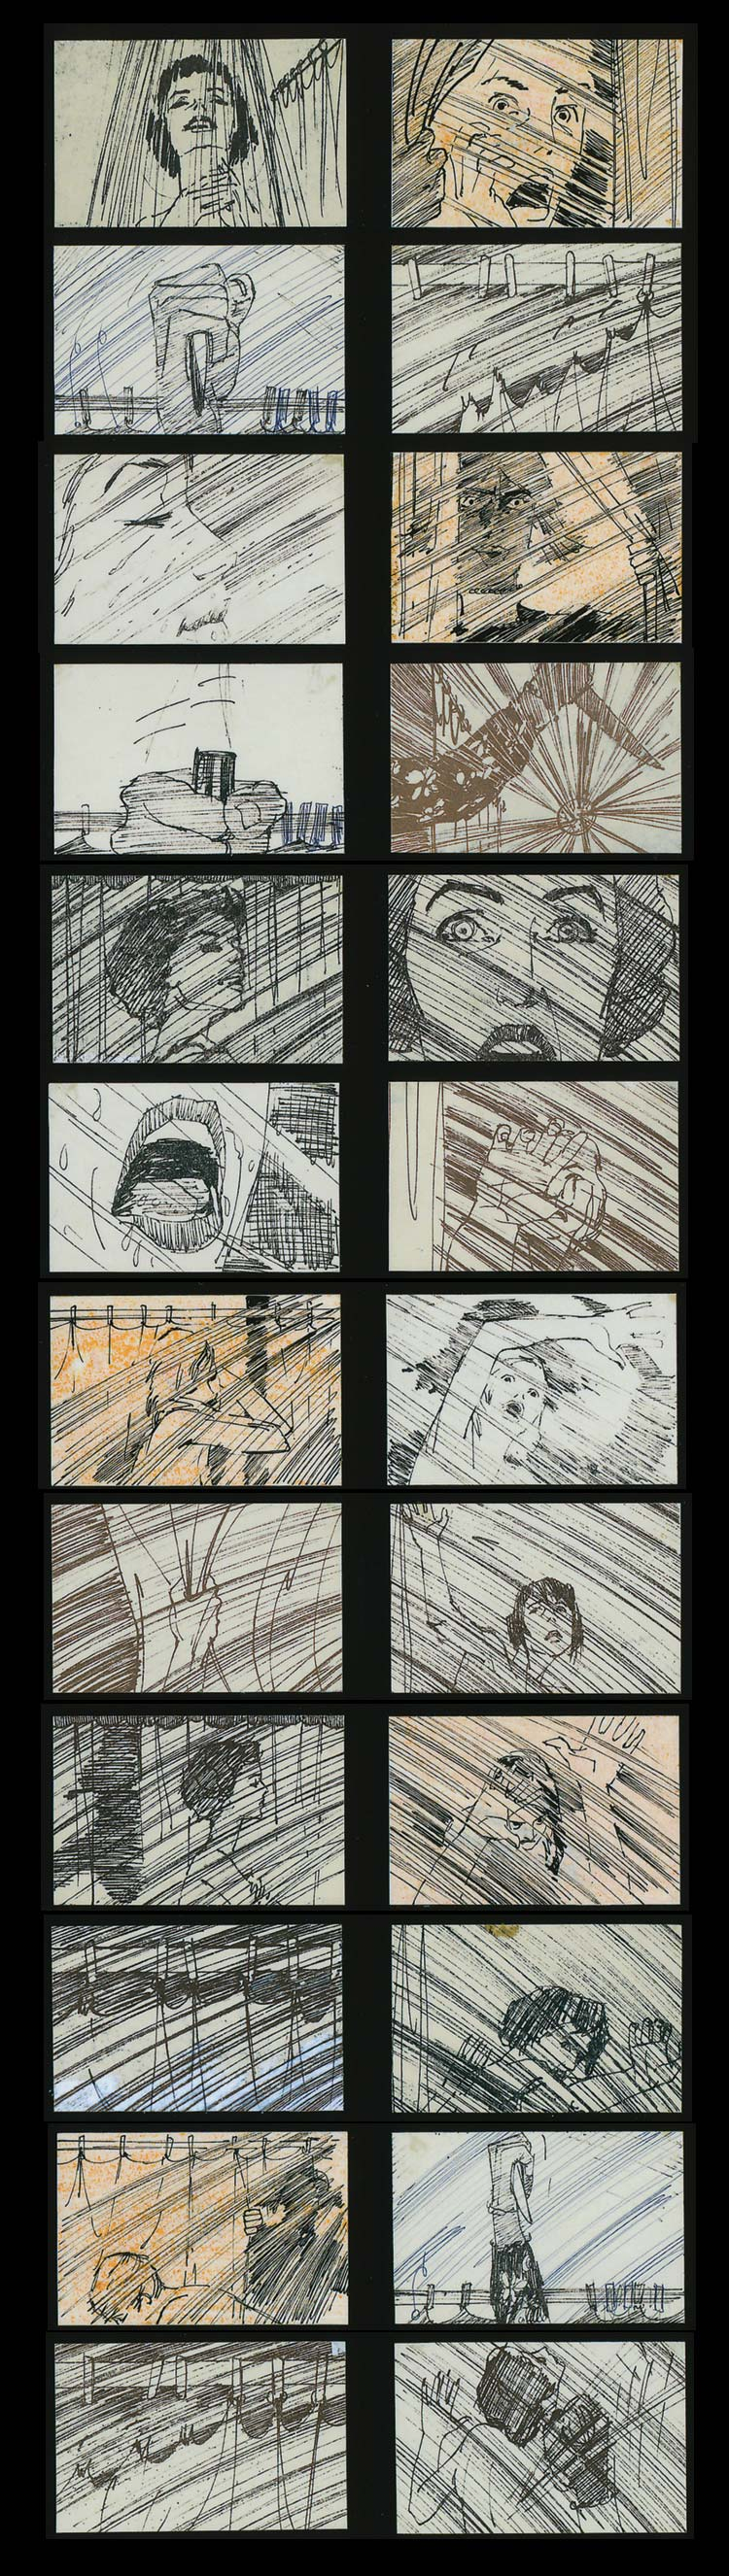 psycho storyboard Storyboards from Ten Popular Films